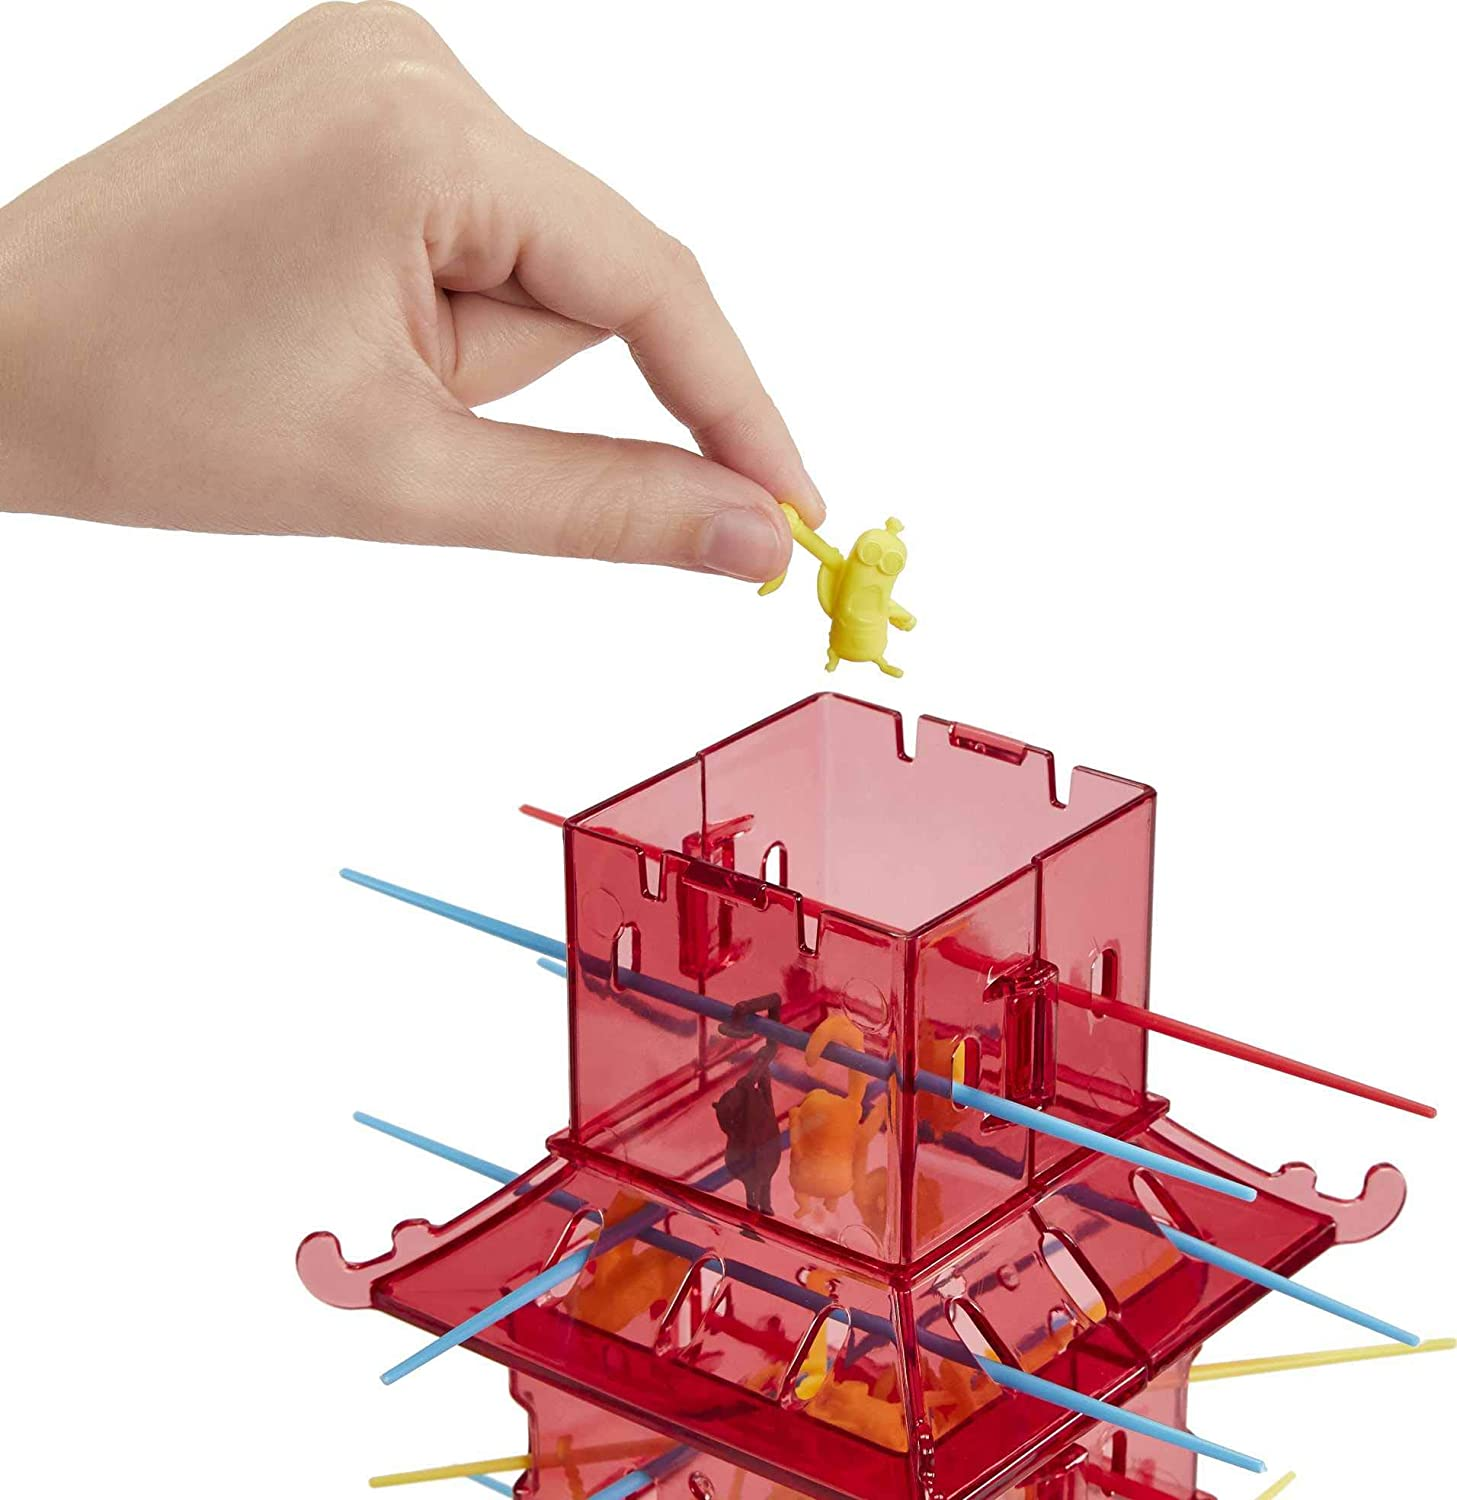 The Rise of Gru with Minions Game Pieces and Pagoda Tower Gift for 5 Year Olds and Up Minions Kerplunk Kids Game Featuring Illuminations Minions